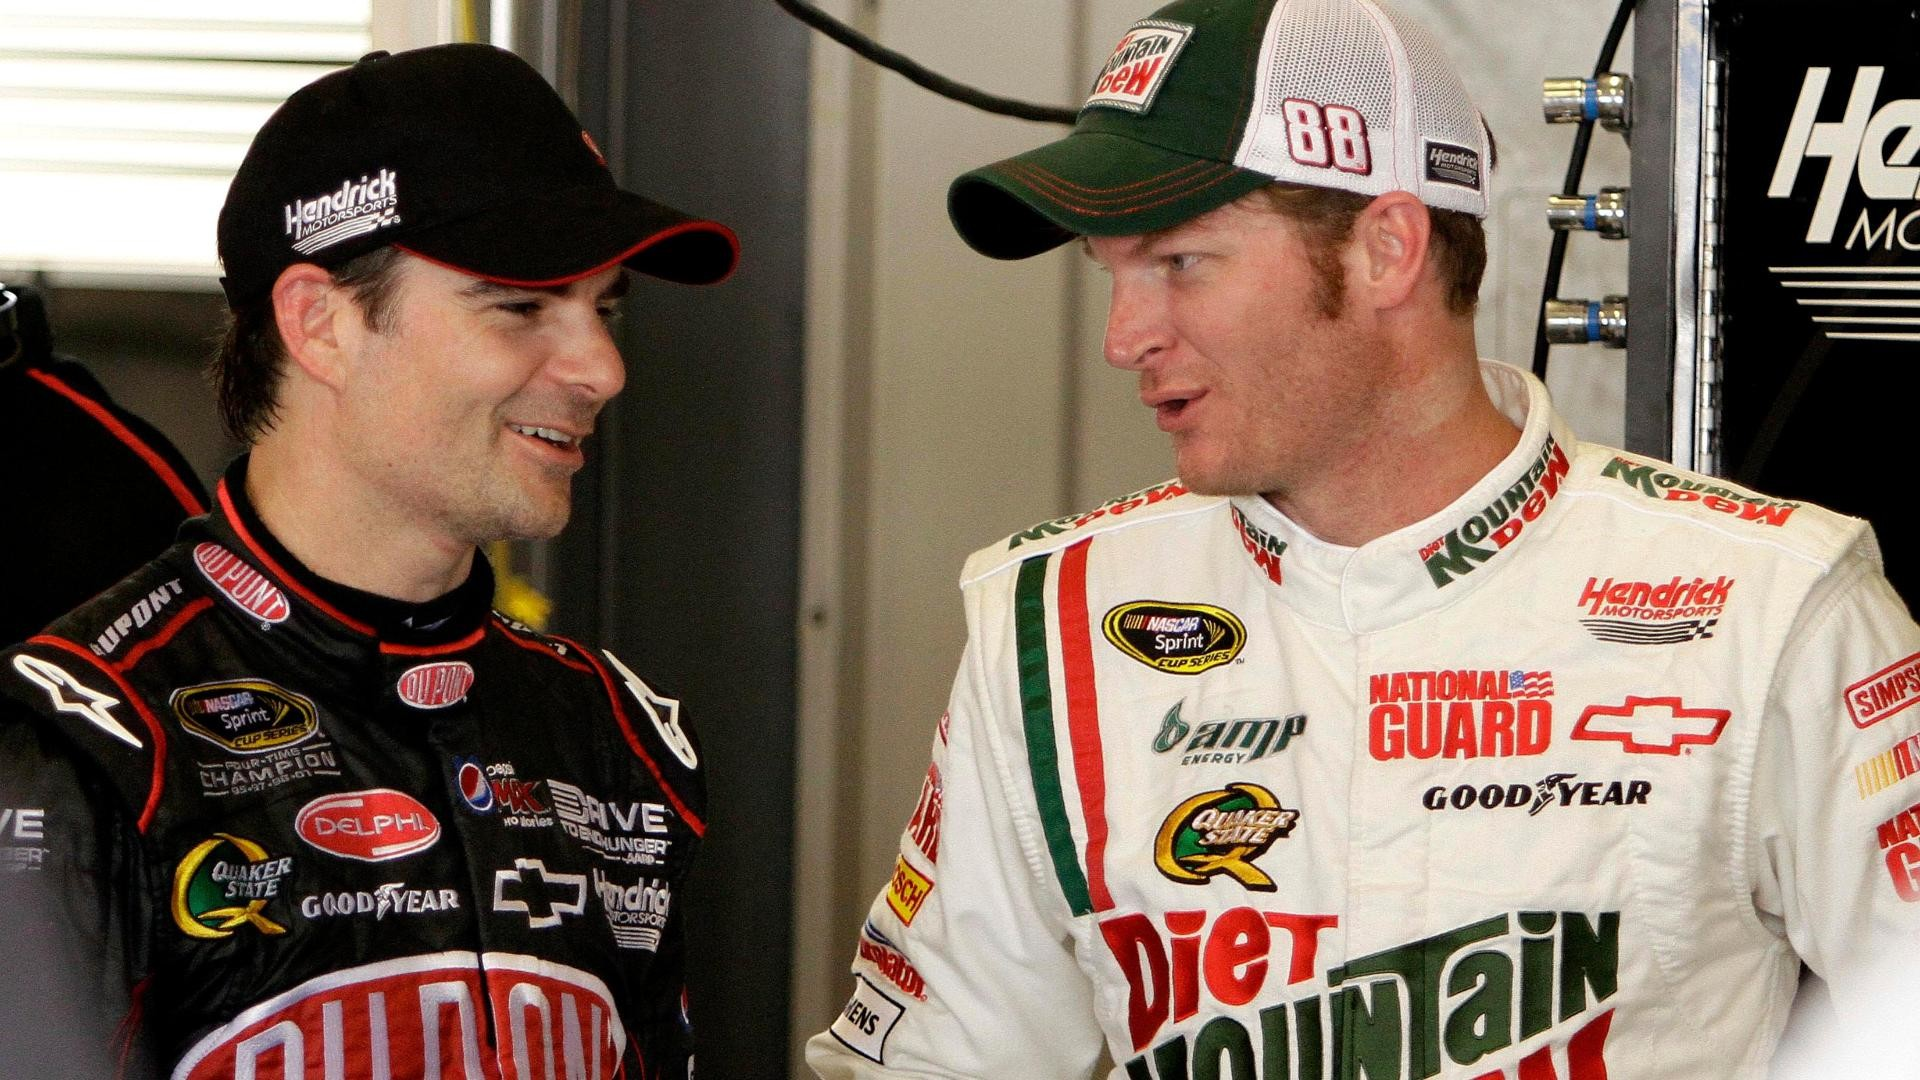 1920x1080 Jeff Gordon to replace Dale Earnhardt Jr. for next two races - ABC News